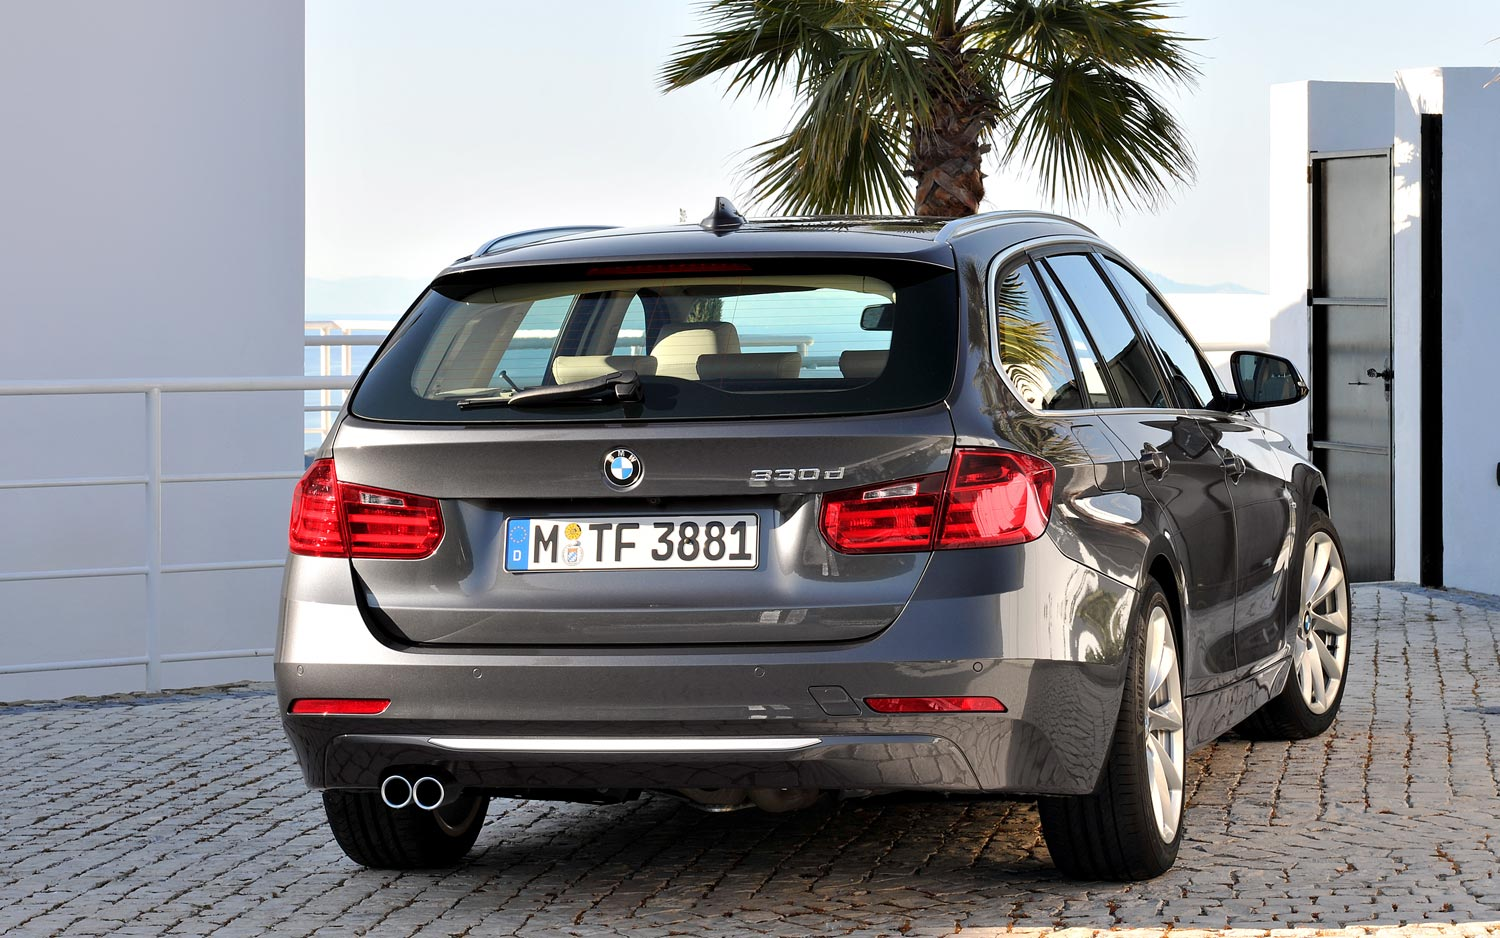 BMW 3 series 330d 2013 photo - 6